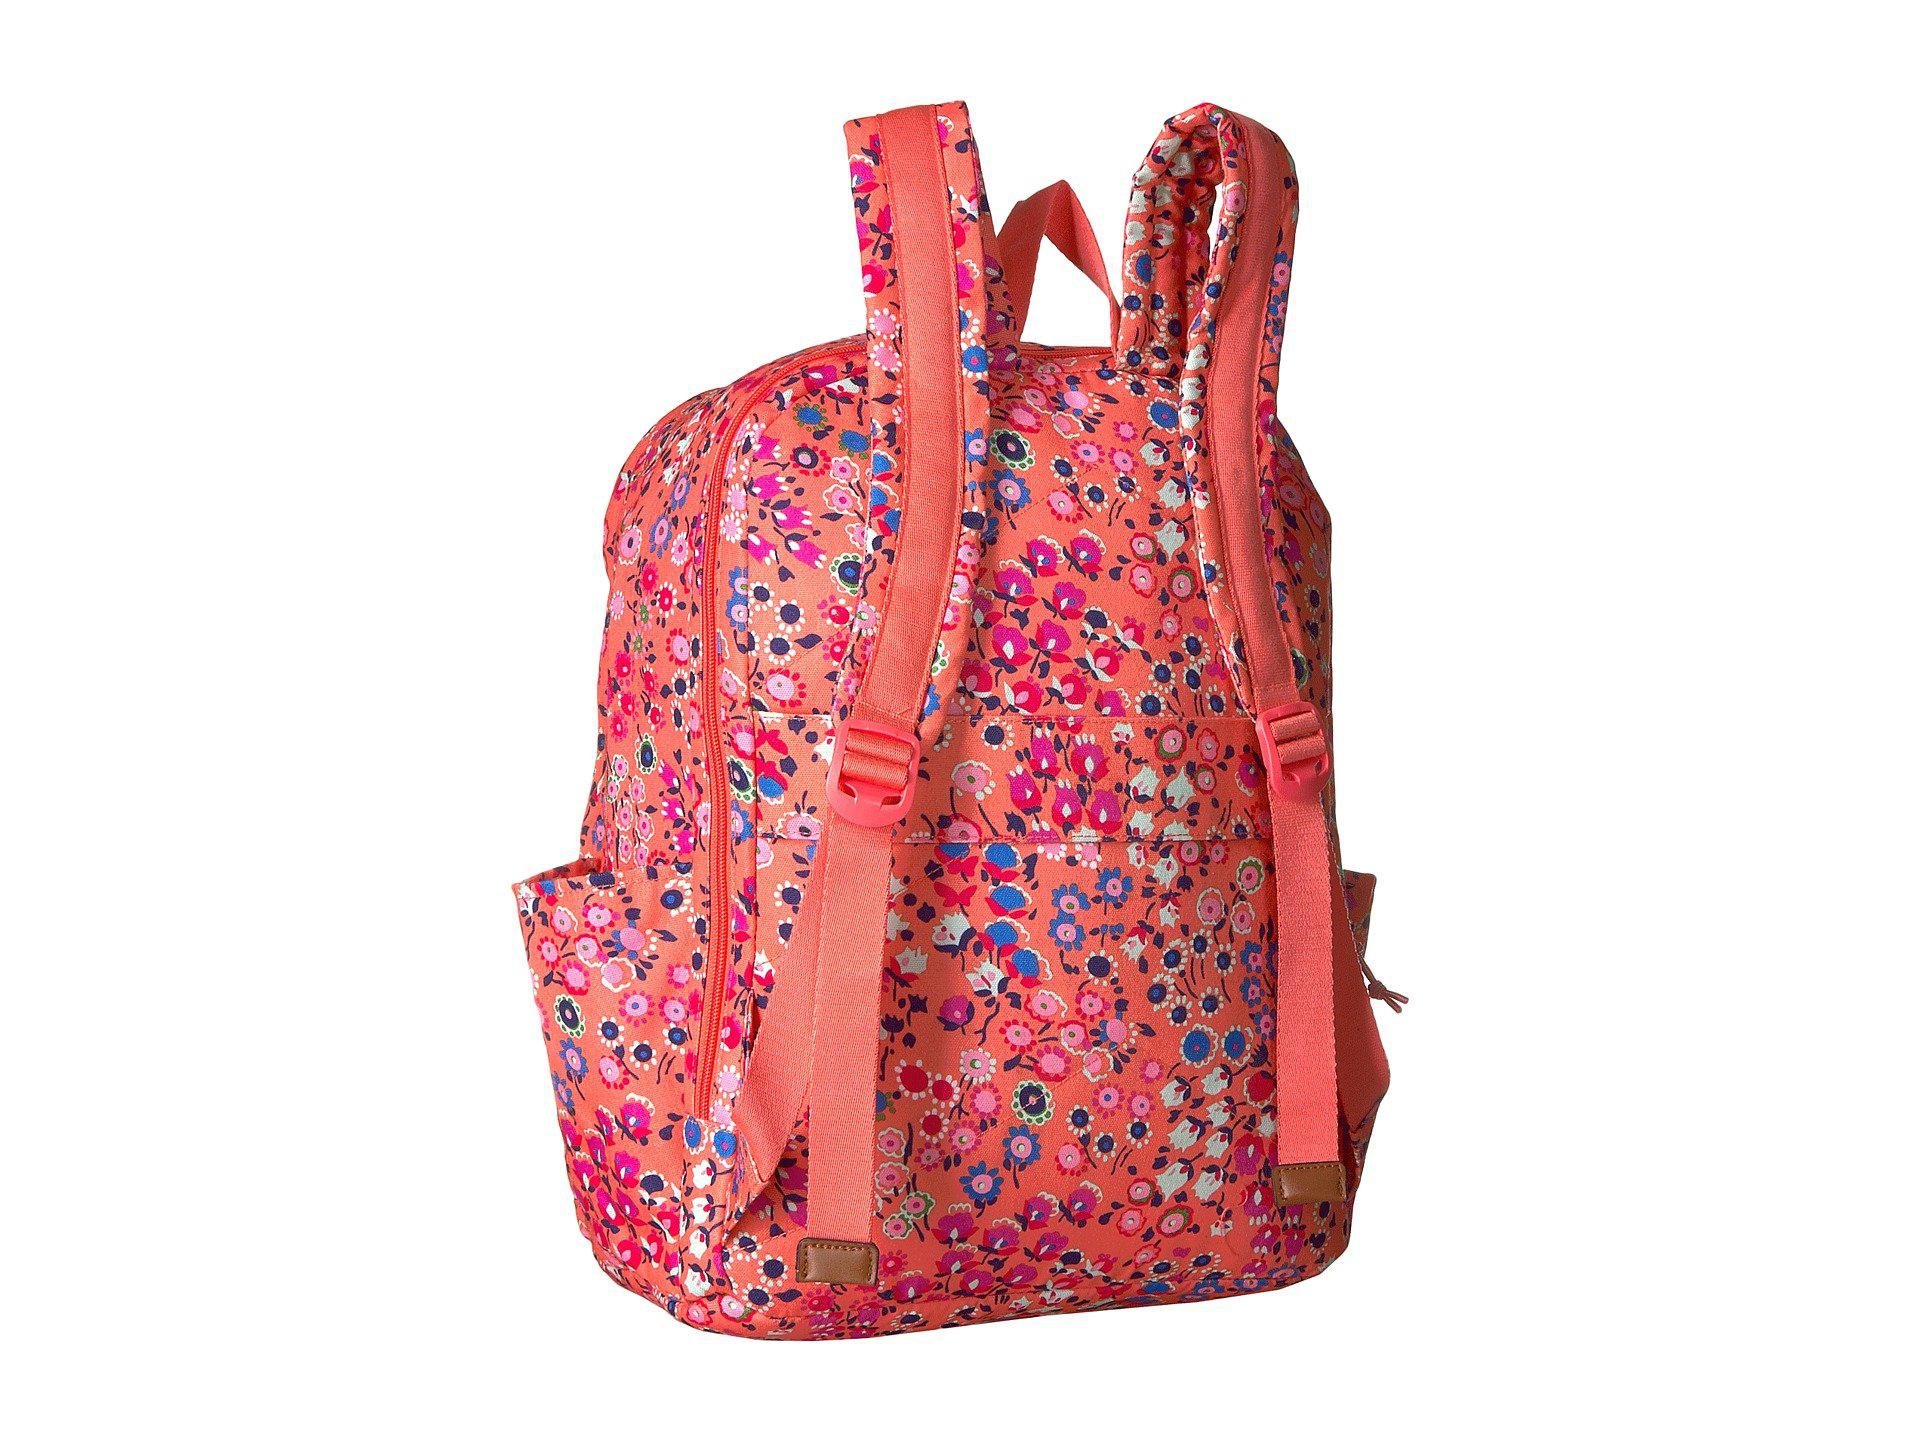 d02f75d45320 Lyst - Vera Bradley Lighten Up Grand Backpack (dream Diamonds ...